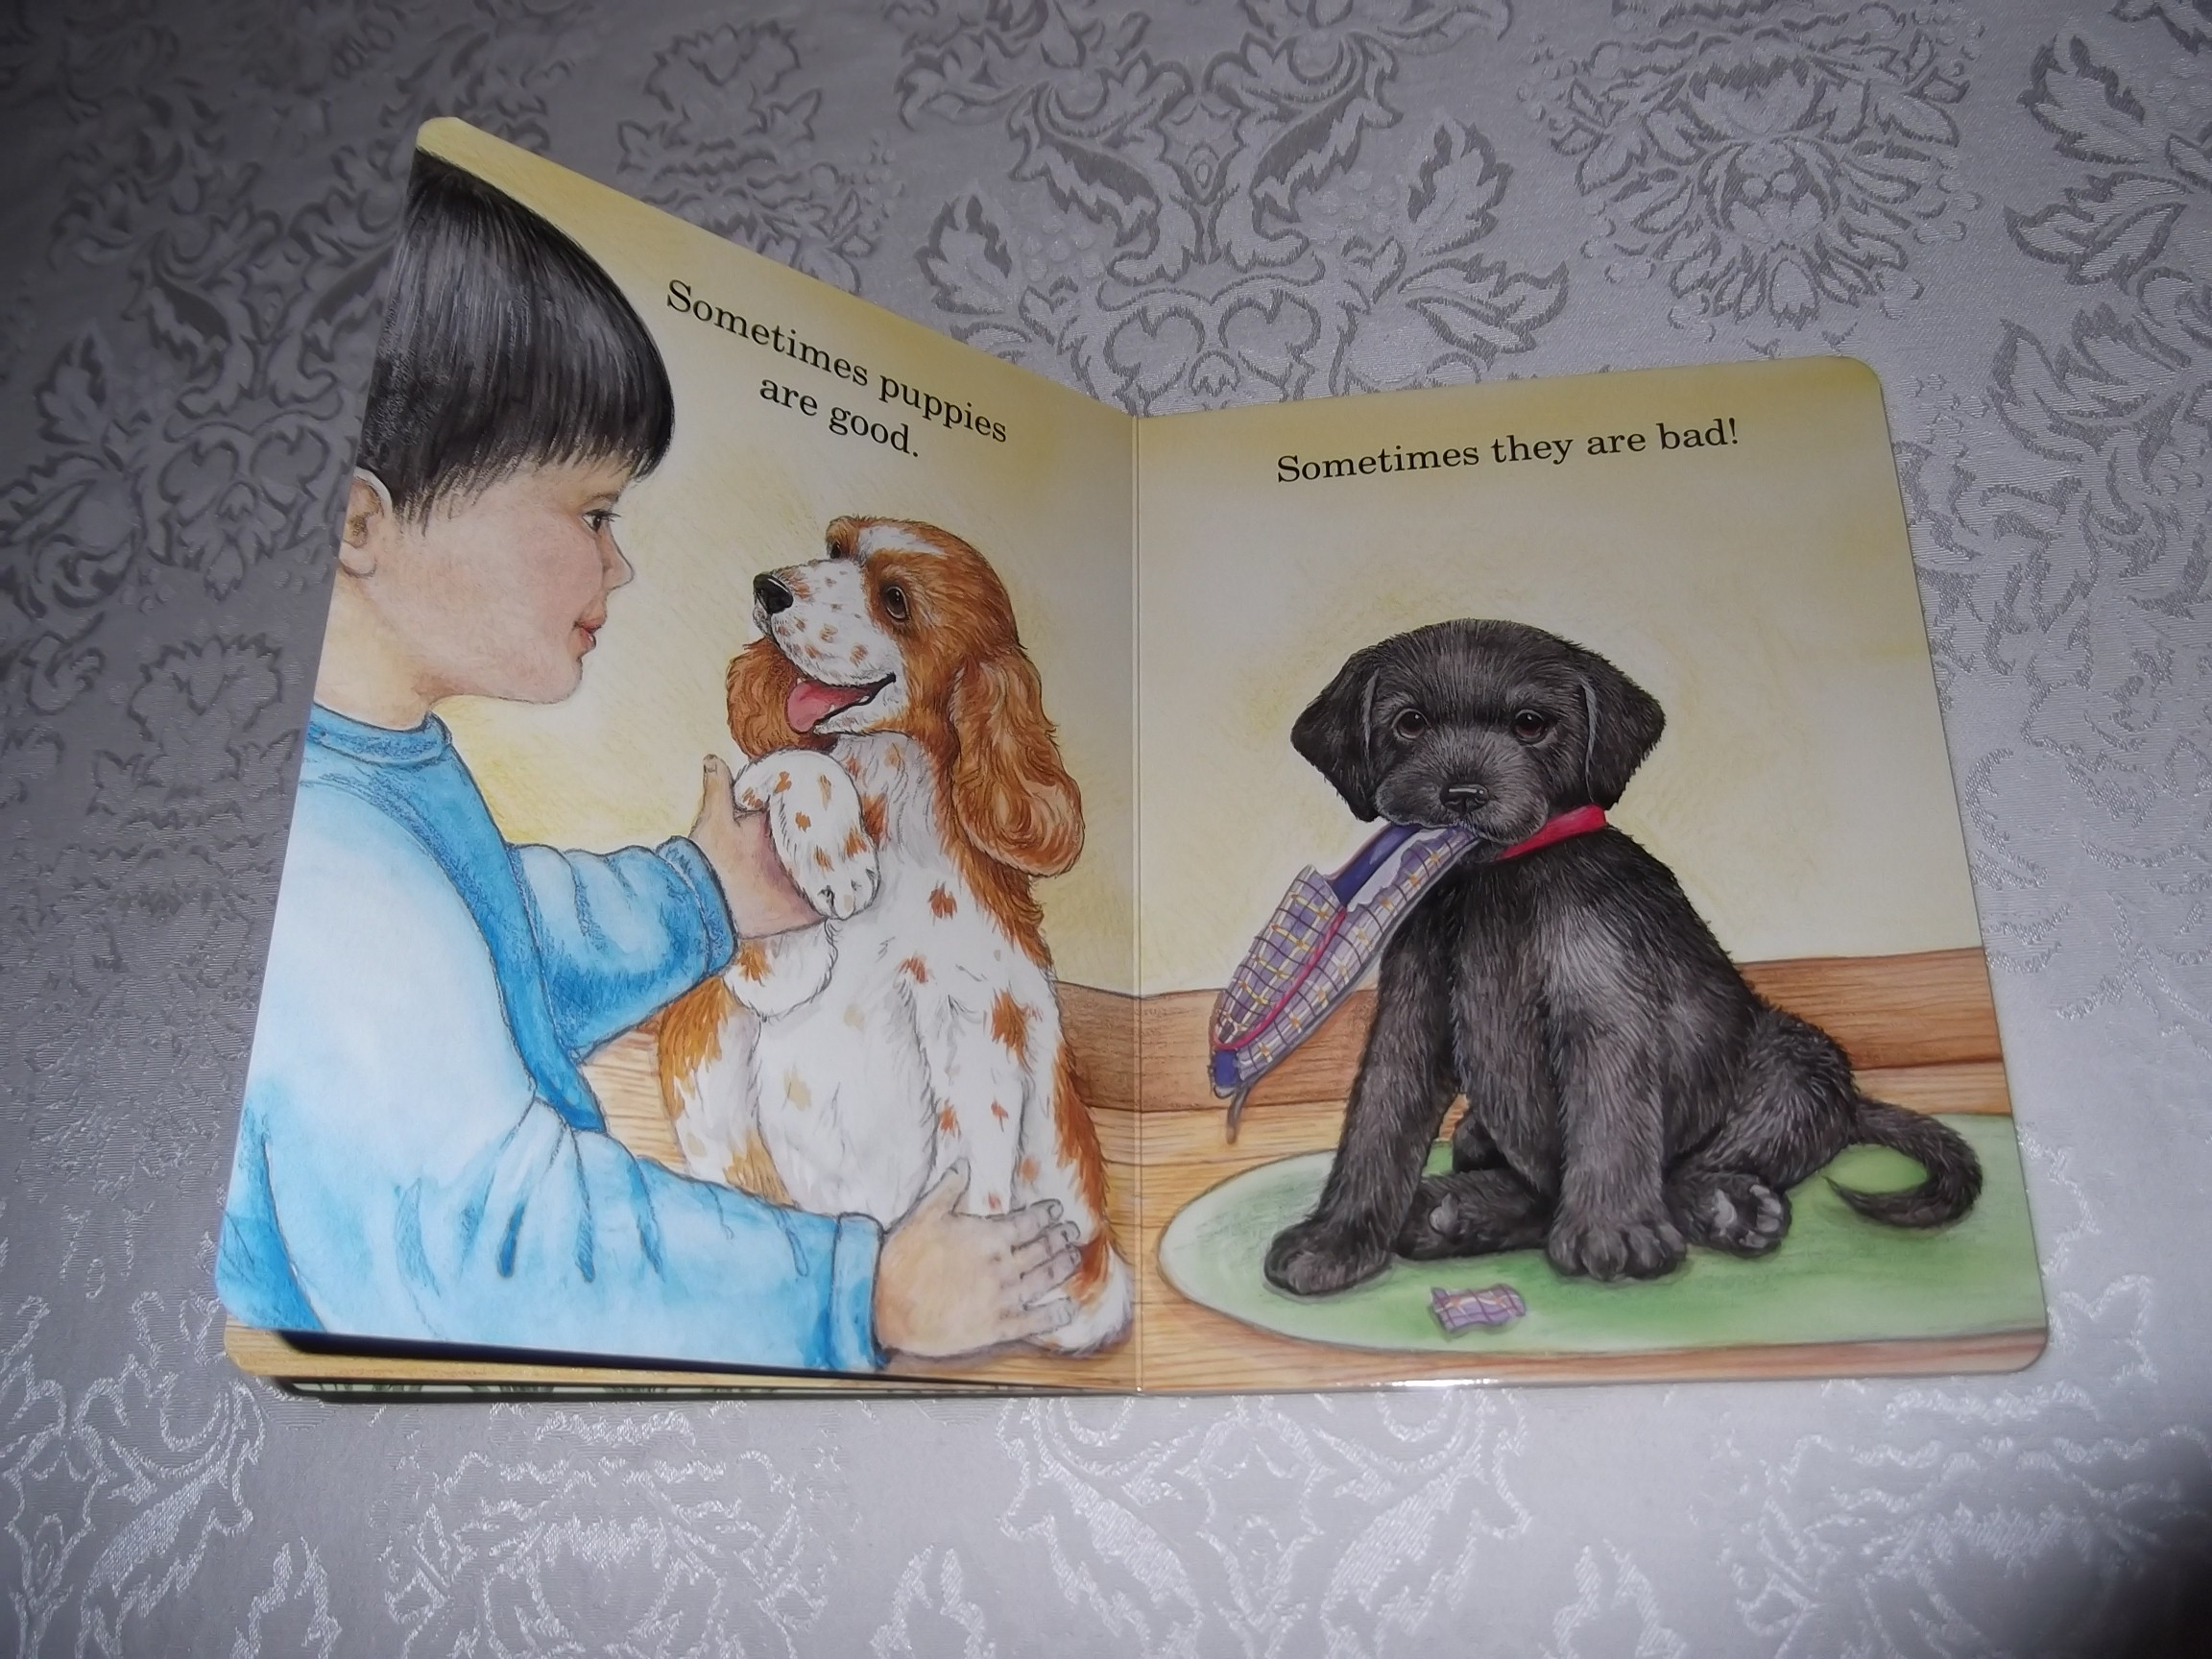 Image 3 of God Made Puppies Marian Bennet Happy Day Brand New Board Book